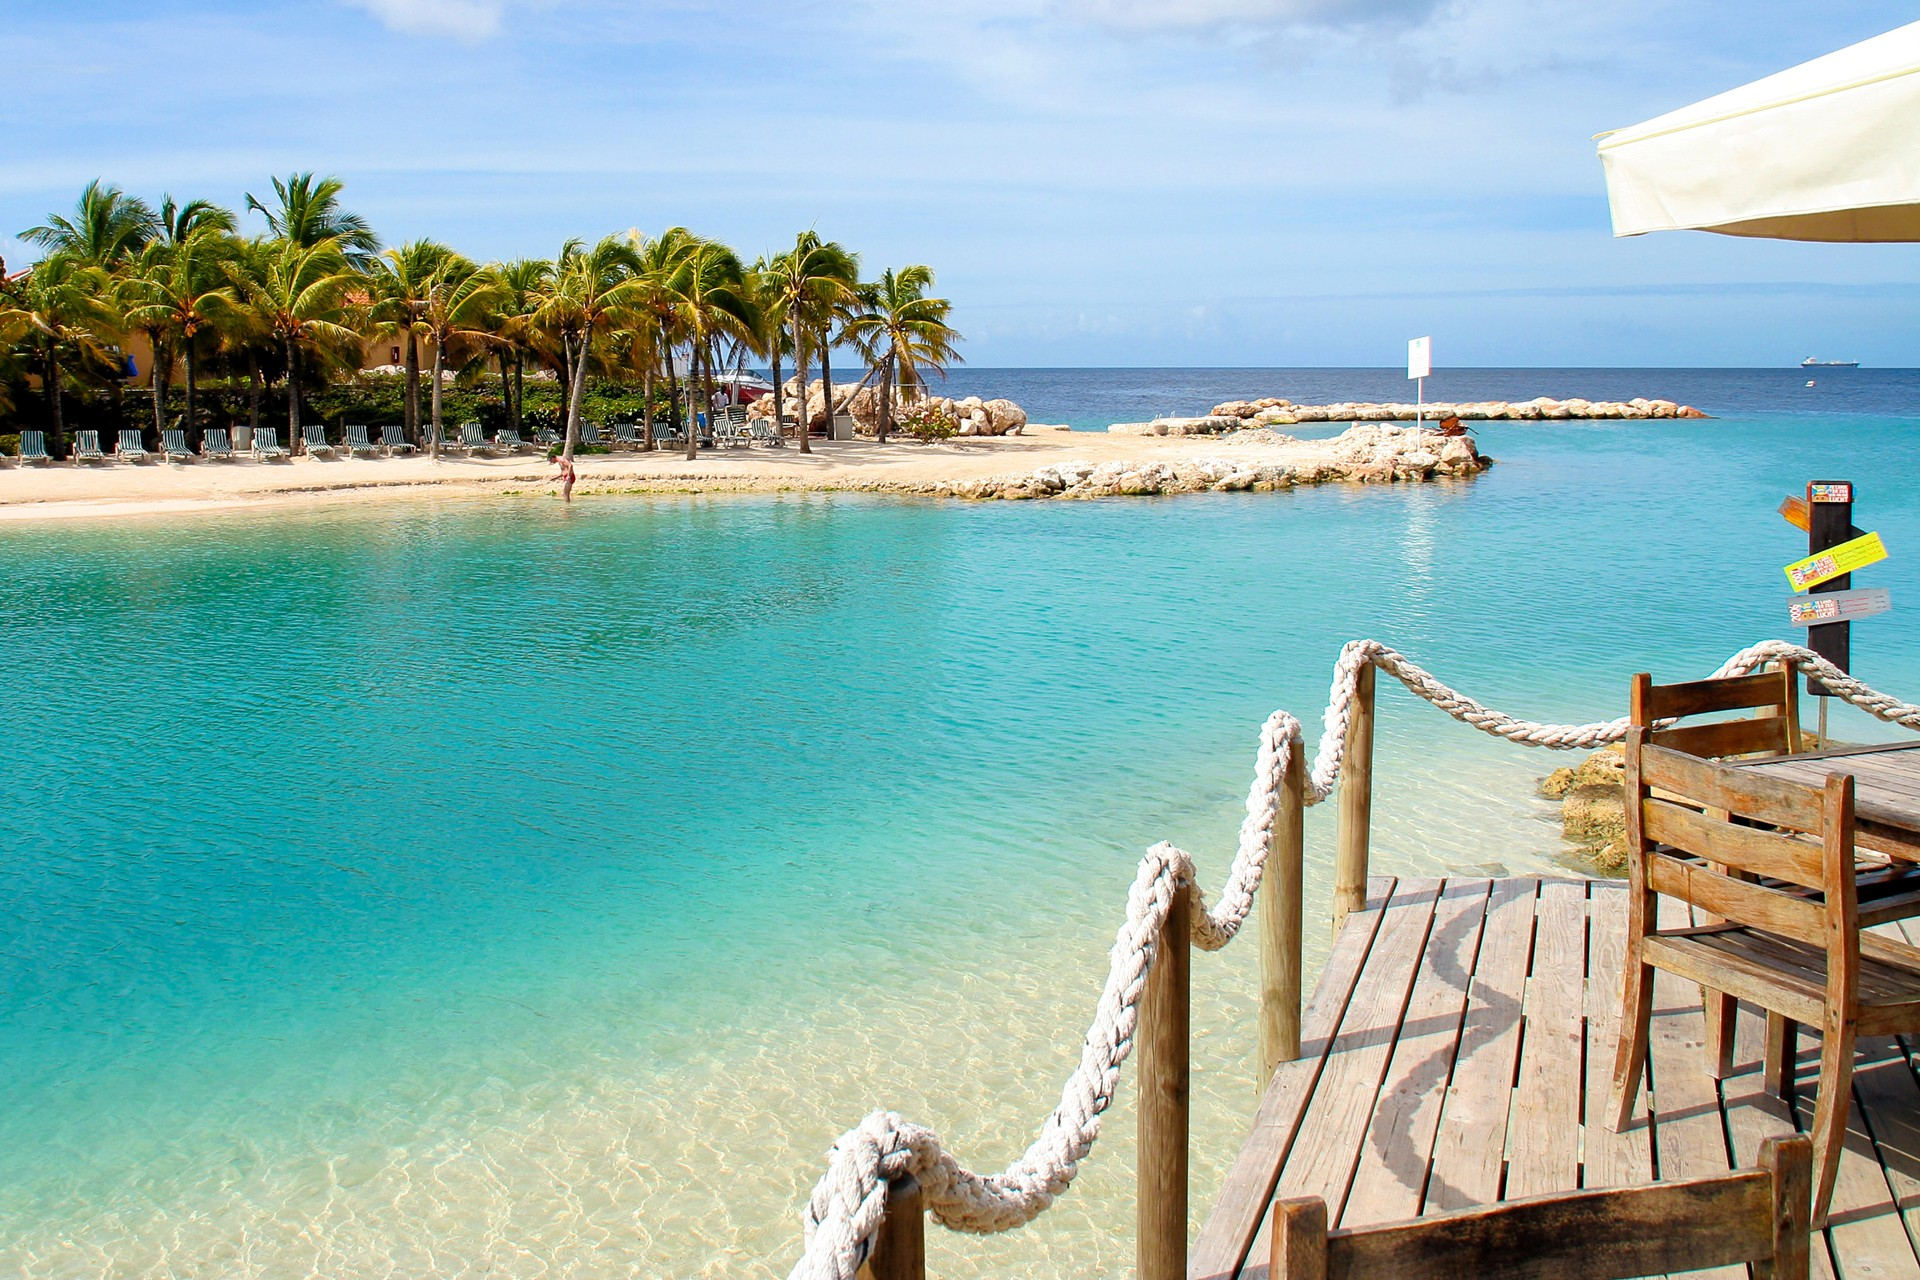 Top 10 curacao most beautiful beaches caribbean best beaches in curacao sciox Image collections